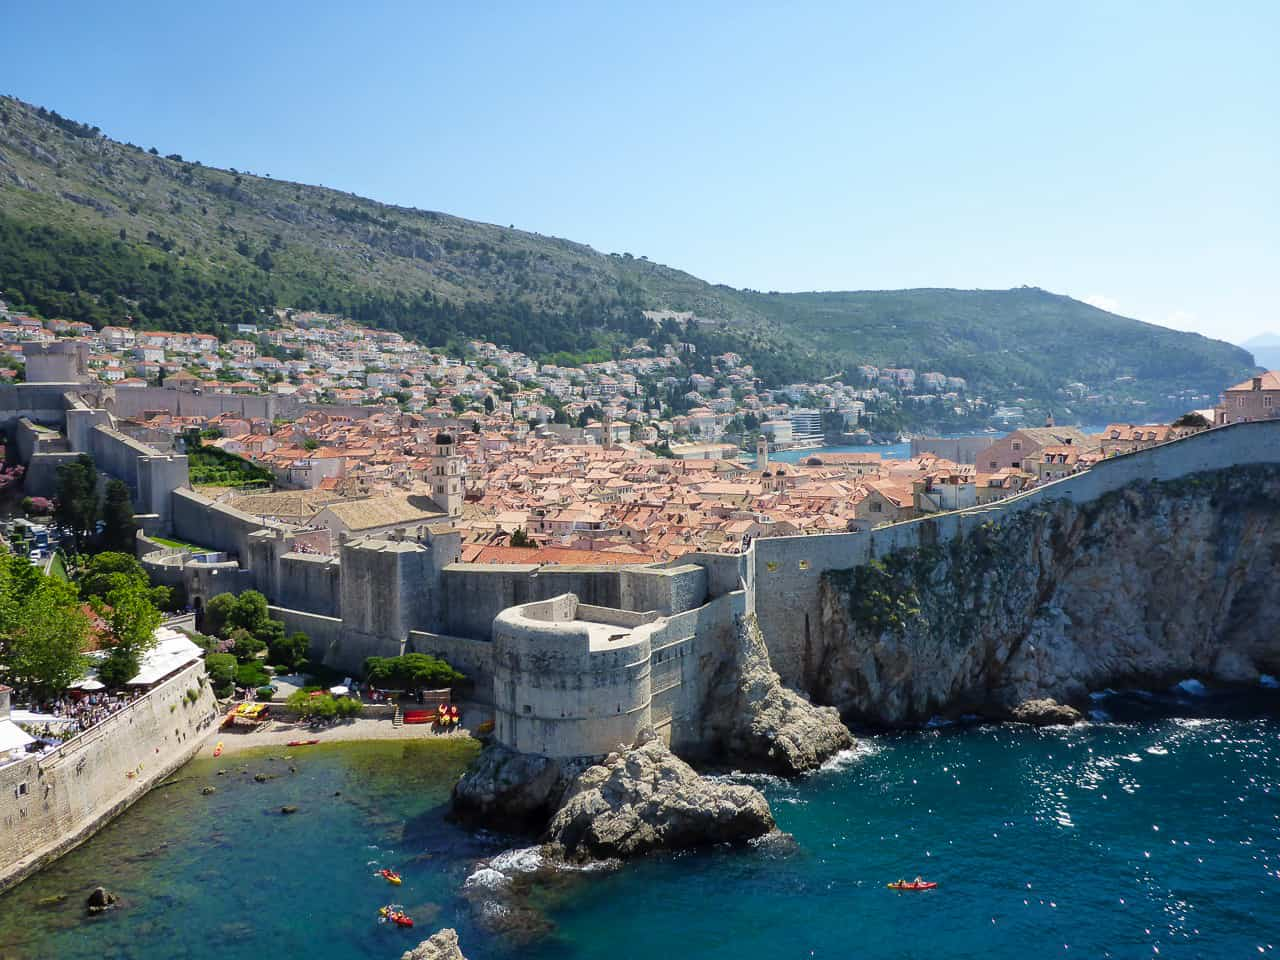 Dubrovnik Walks' Game of Thrones Tour: A Review